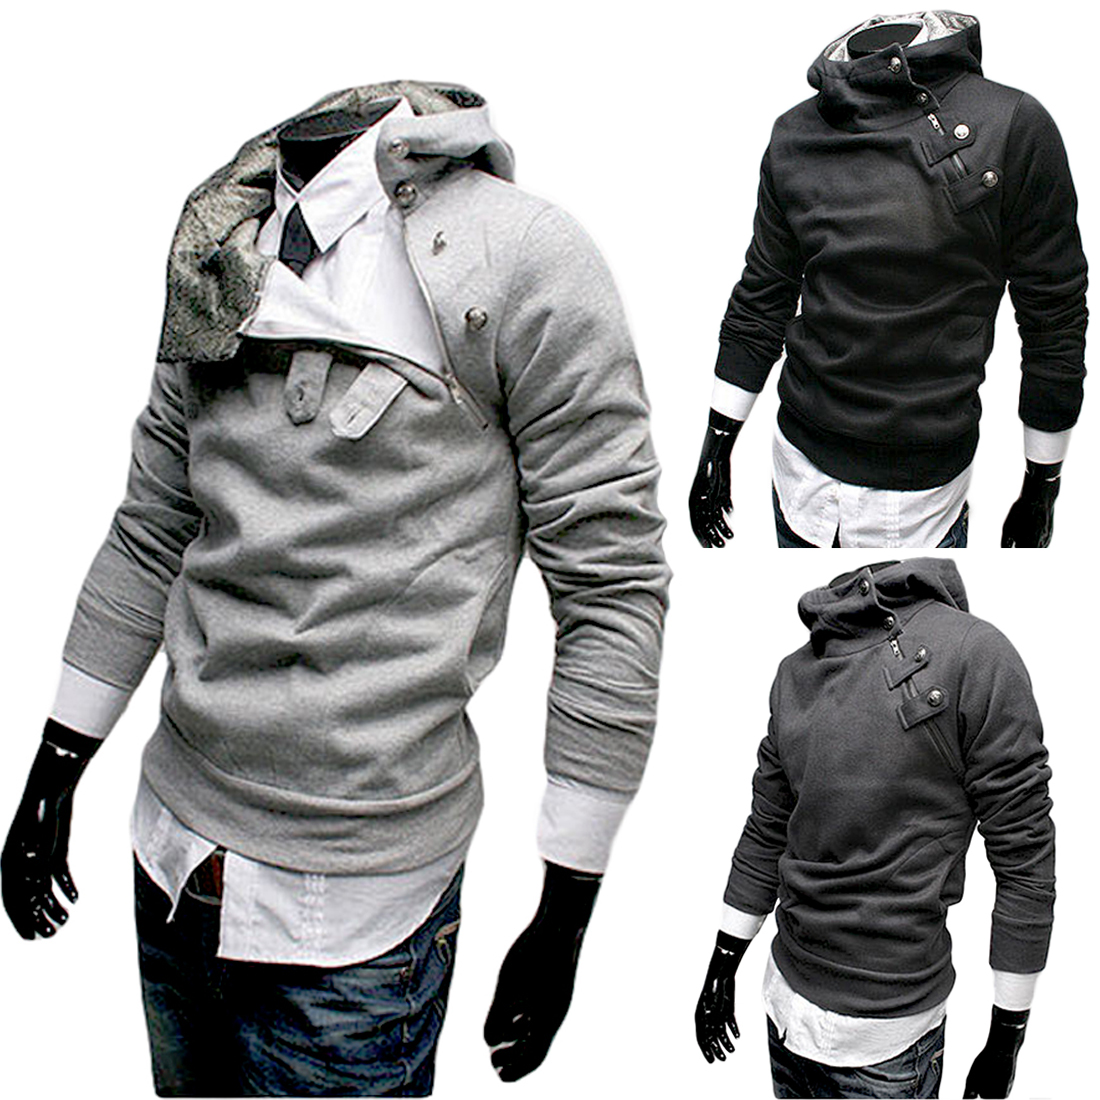 2017 Hooded supreme Hoodies Men Black Grey Tilt Zip Fashion Sweatshirt Casual Pullover Hoodies Slim Hot